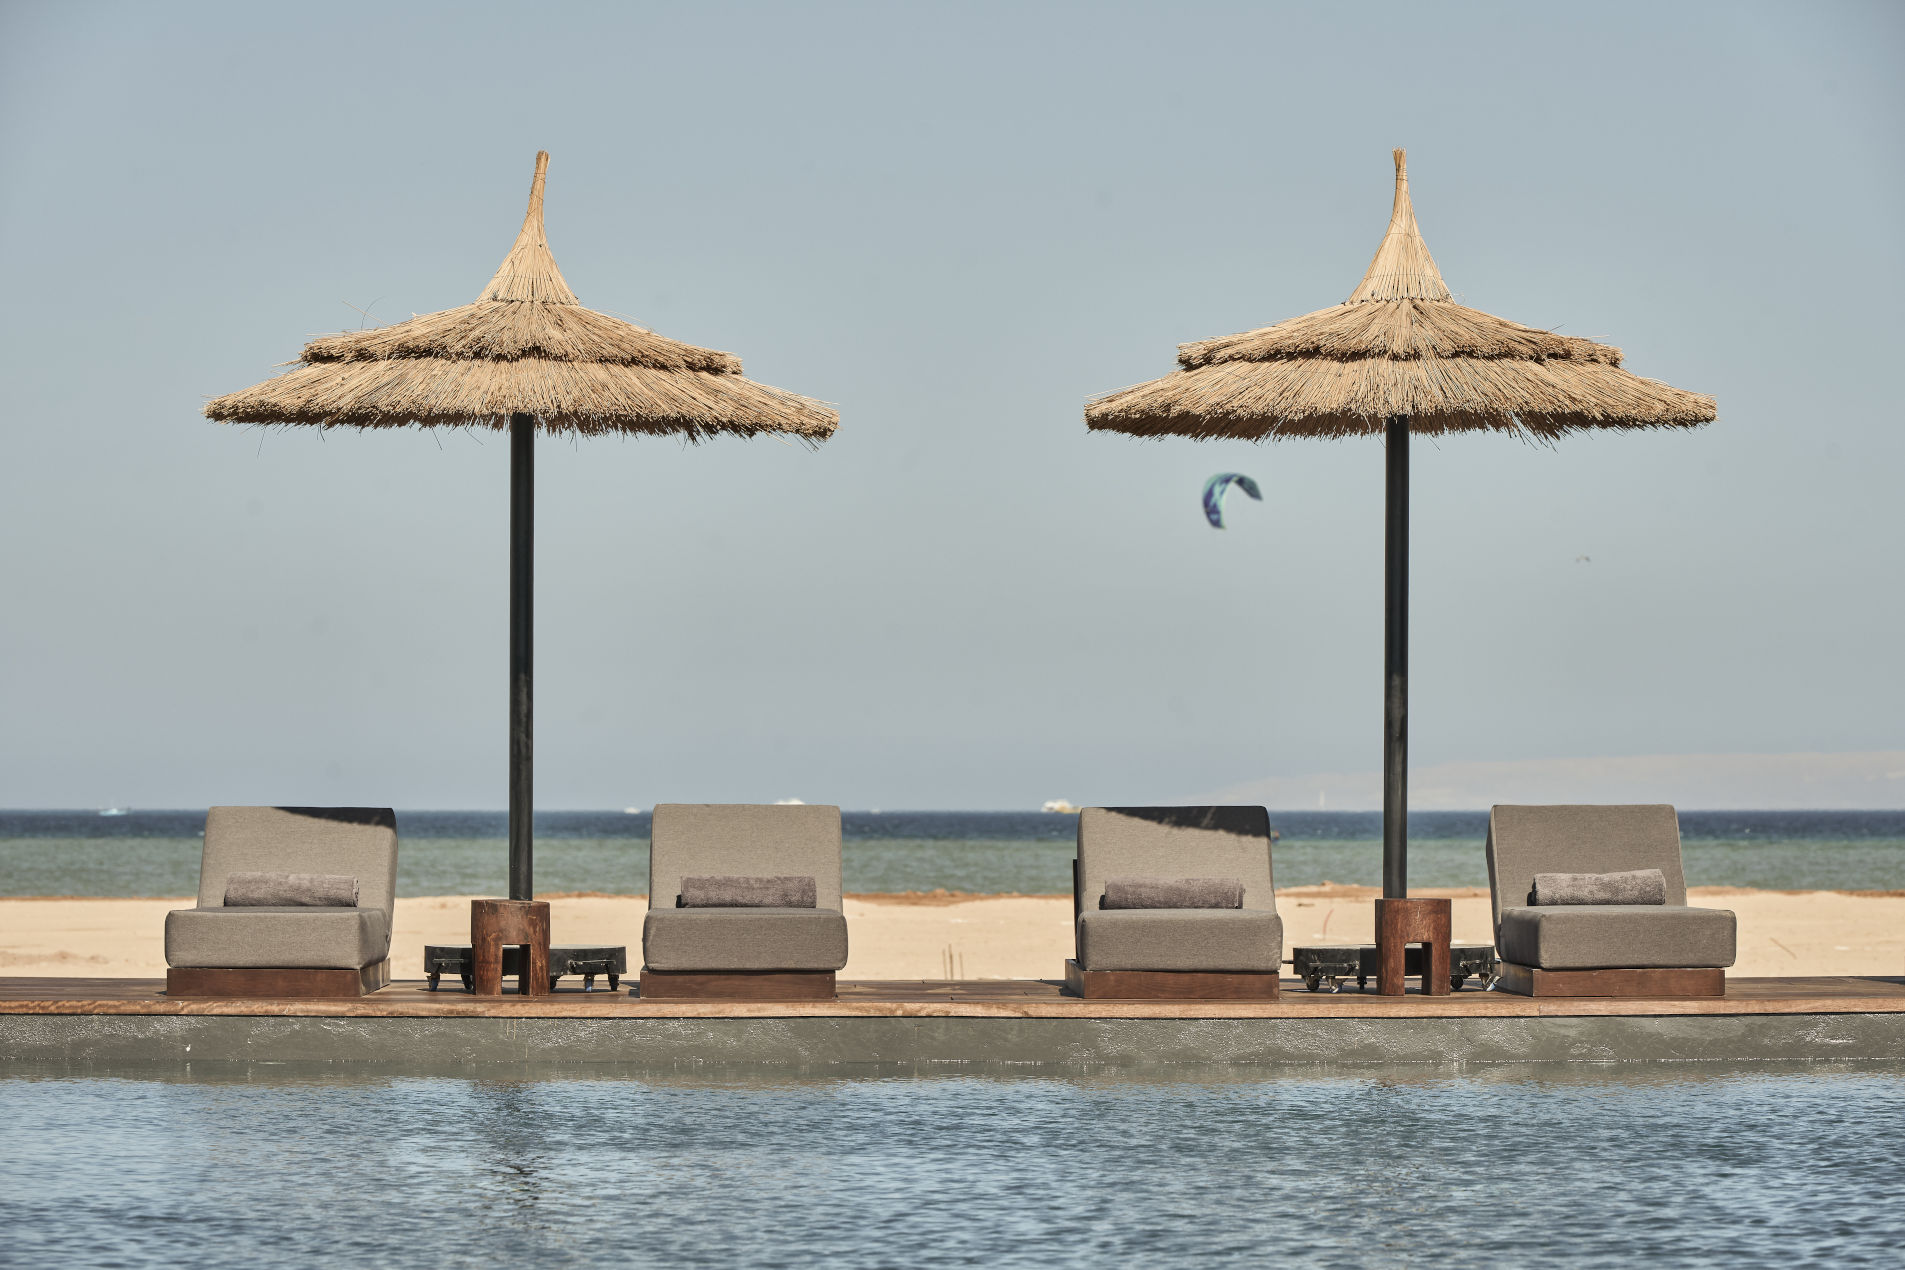 Casa Cook Hotel El Gouna Red Sea Pool Chaise Lounge and Kites on the Beach